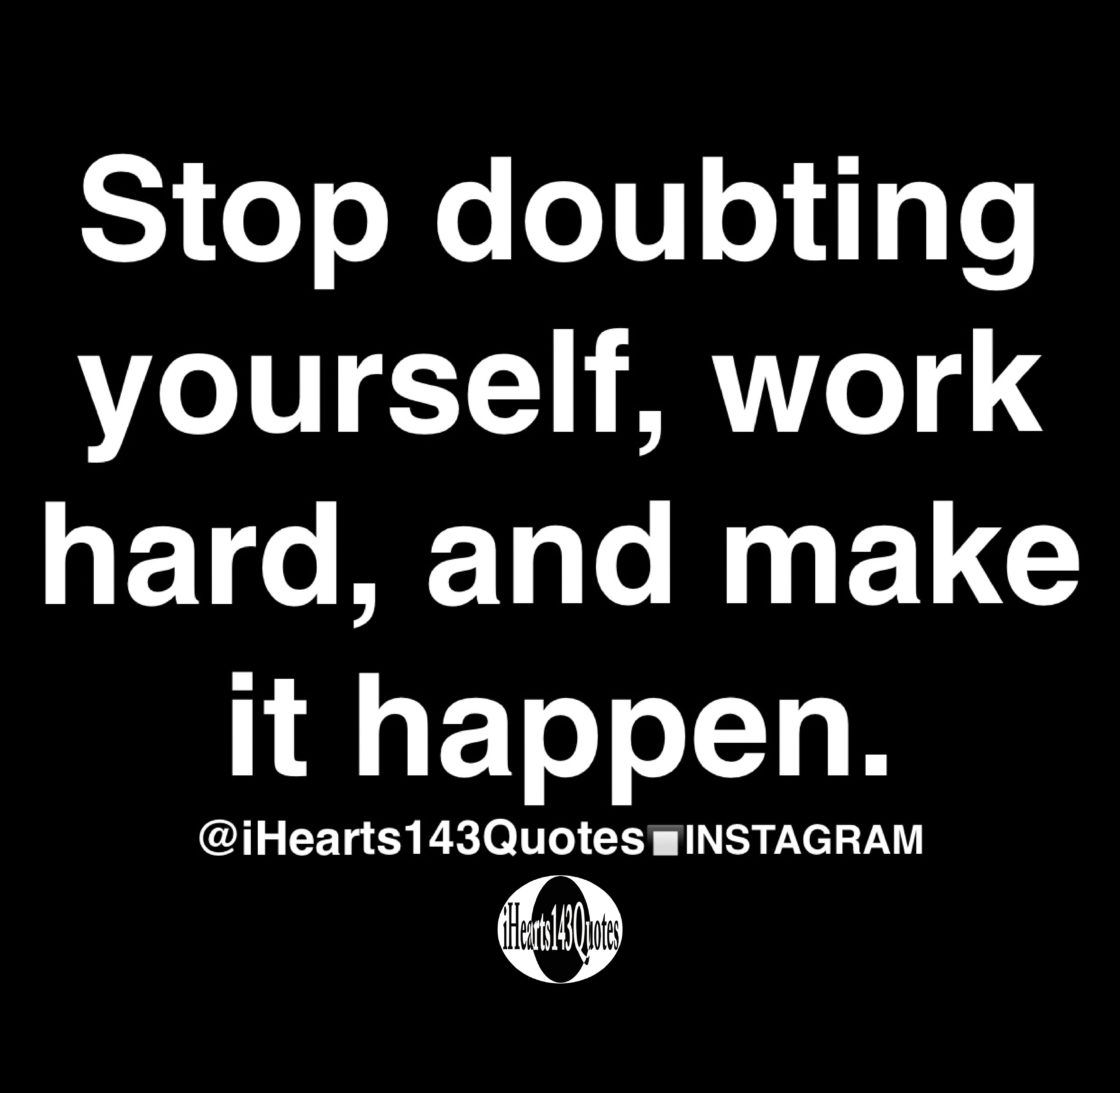 Stop doubting yourself, work hard, and make it happen - Quotes